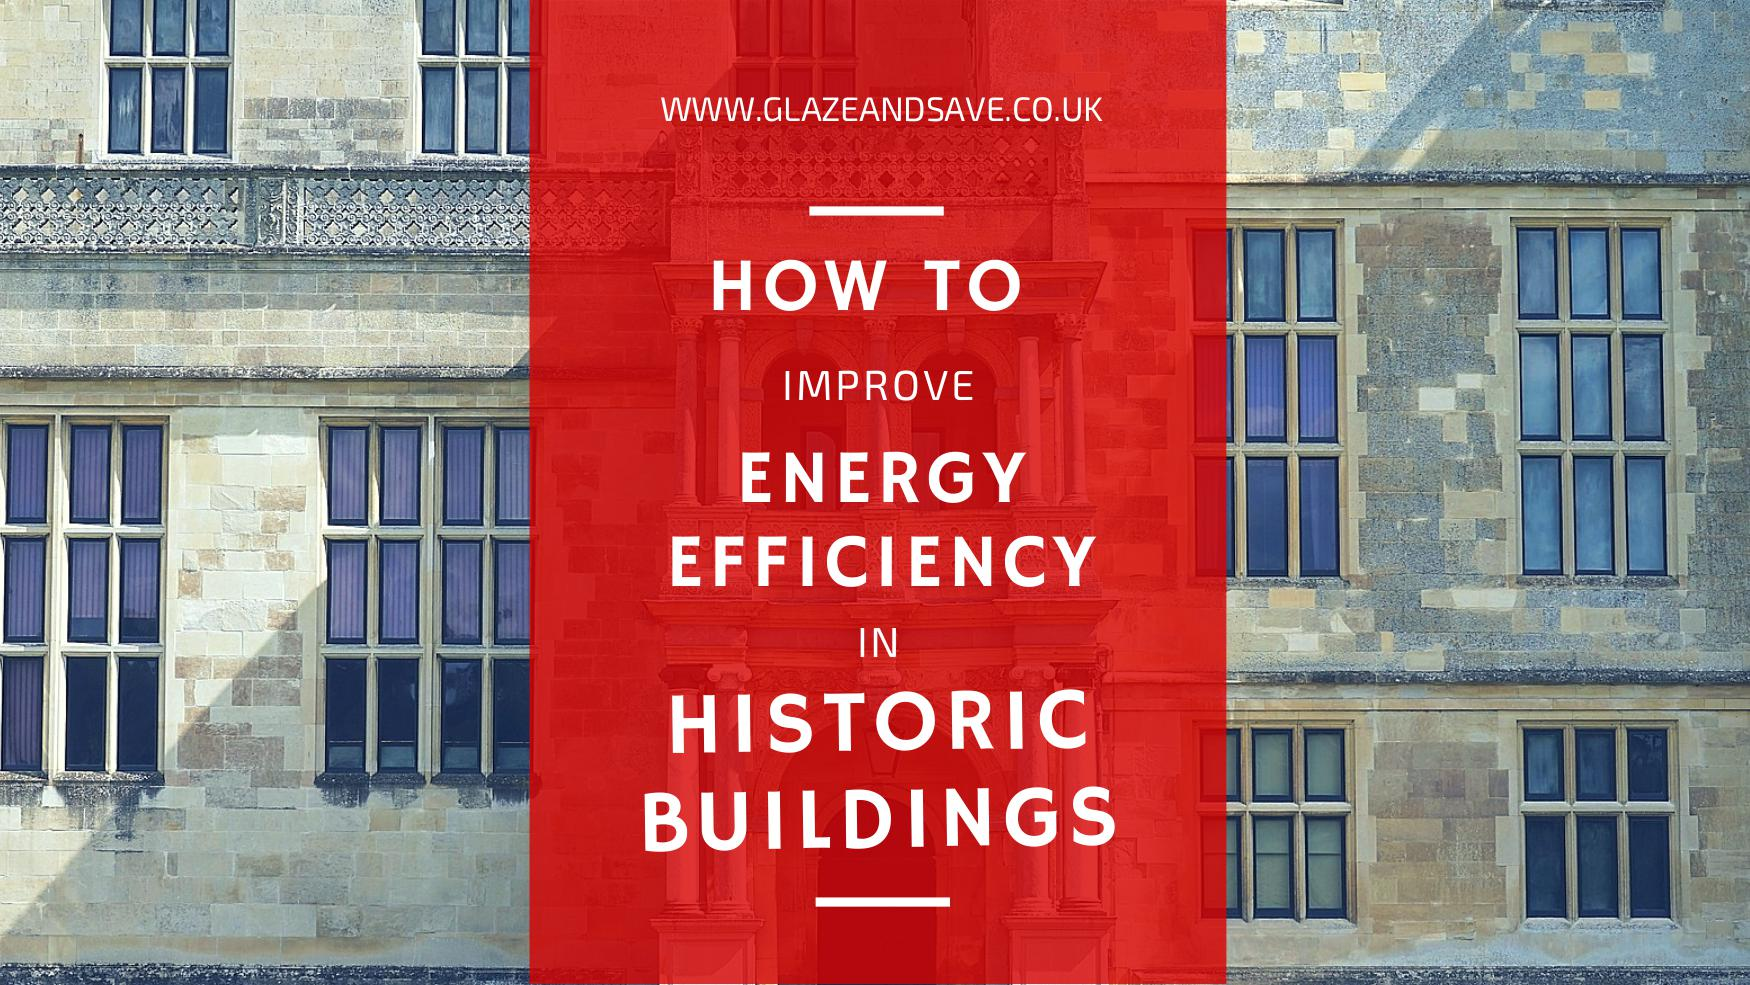 How to improve energy efficiency in historic buildings and listed buildings by Glaze and Save bespoke magnetic secondary glazing based in Scotland www.glazeandsave.co.uk